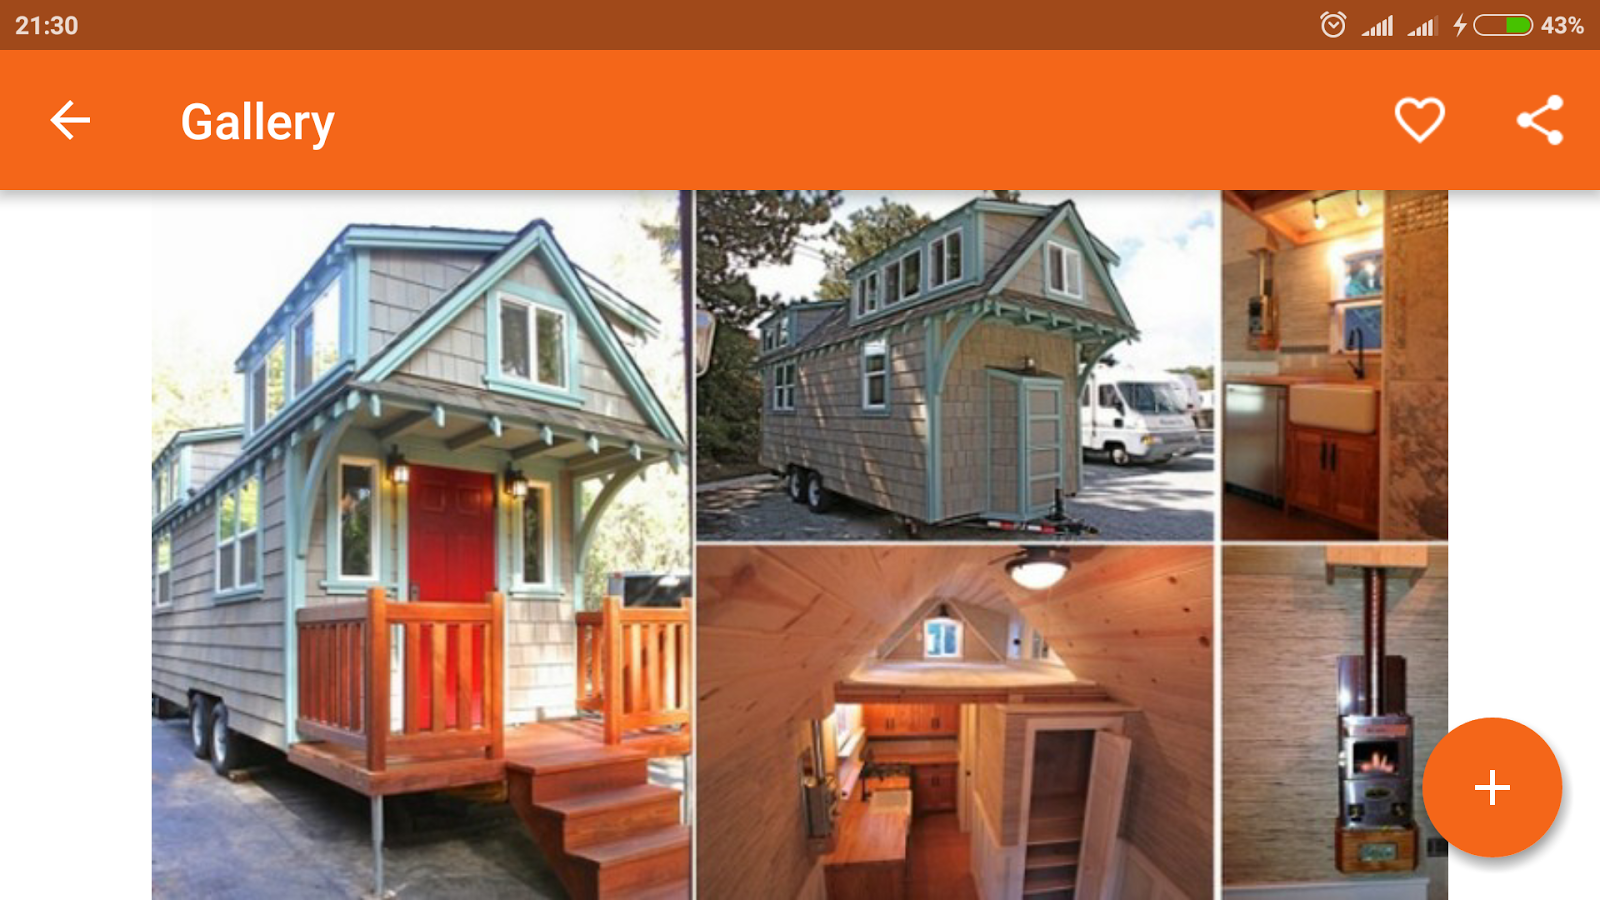 Tiny House Design Plans  screenshot Android Apps on Google Play